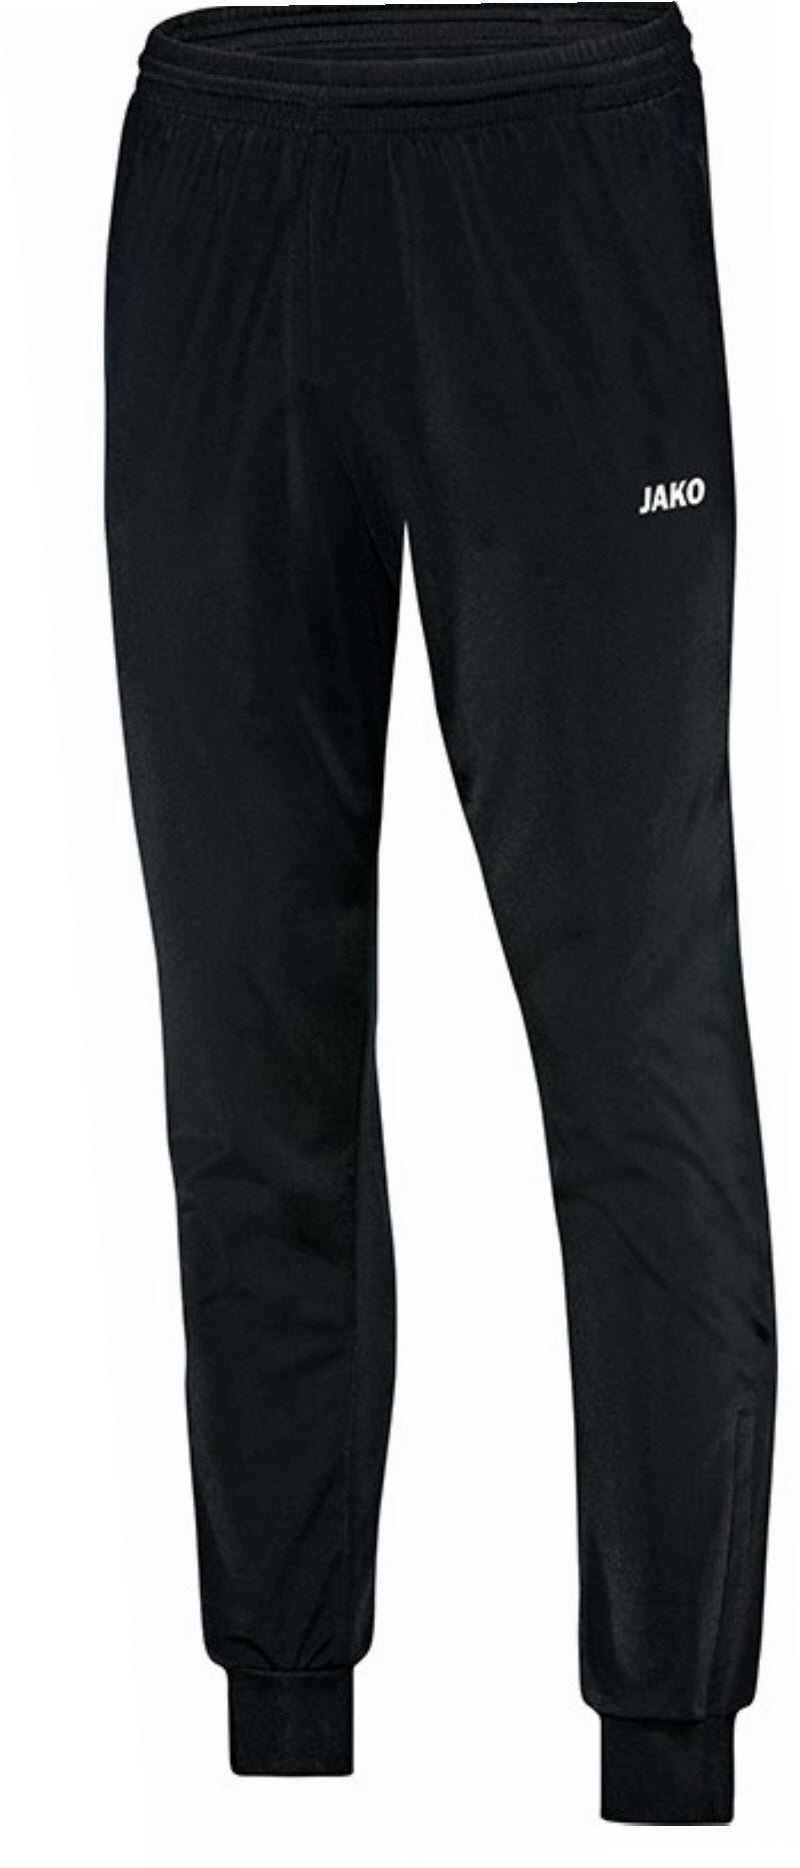 KIDS JAKO HIGHFIELD UNITED POLYESTER TROUSERS CLASSICO HU9250K BLACK